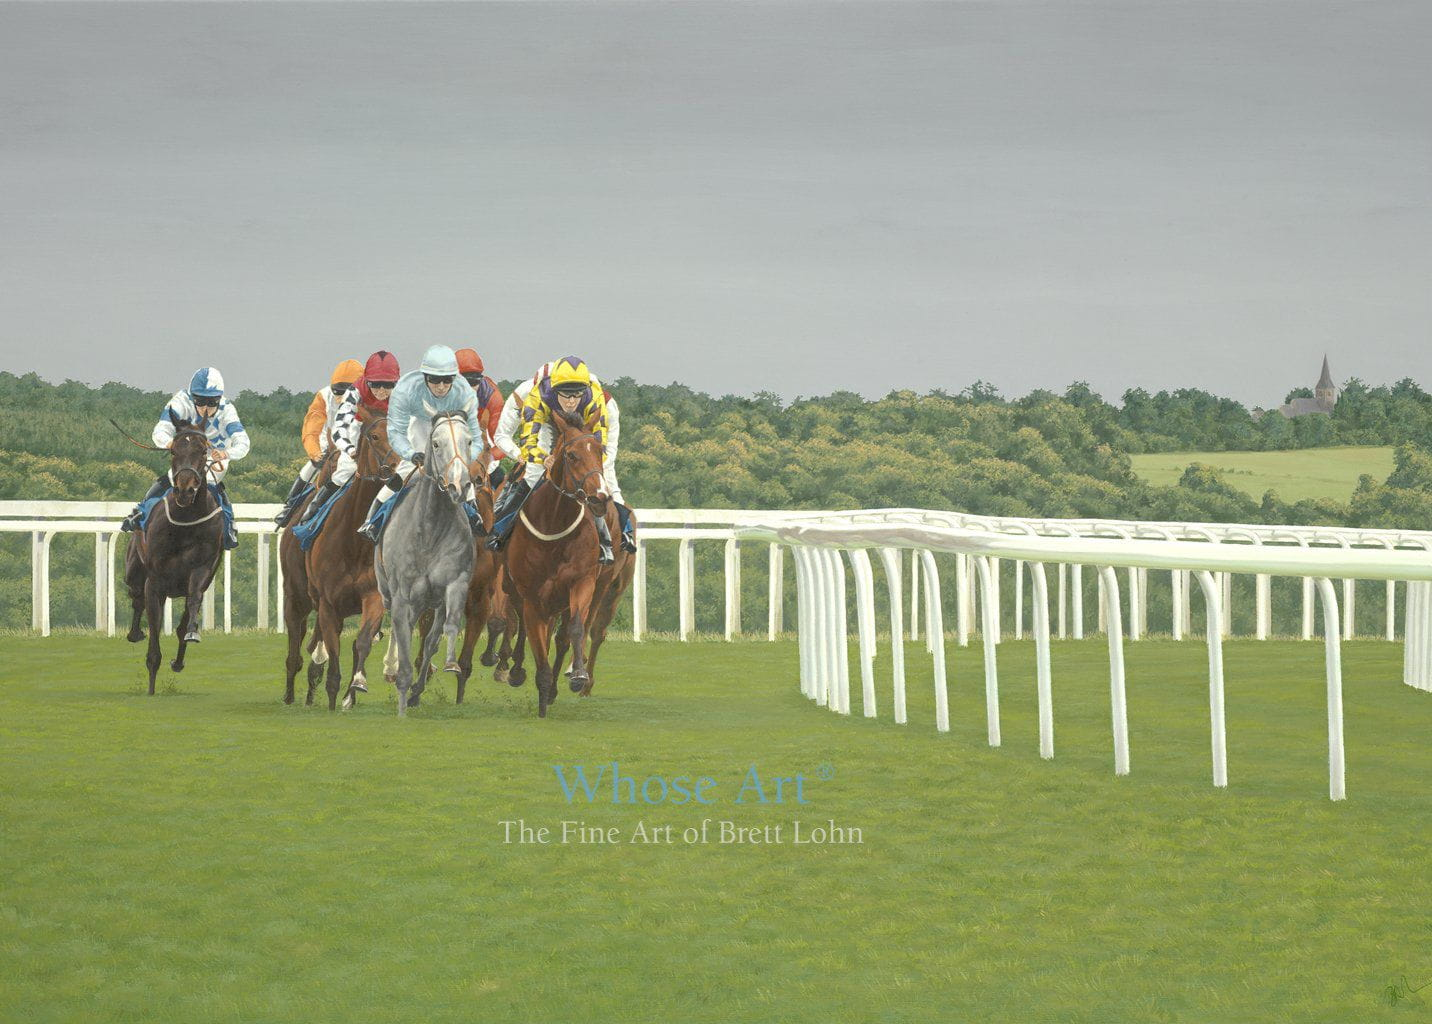 Horse racing art greeting card featuring a painting of horses racing at Epsom on a July evening with a stormy sky behind